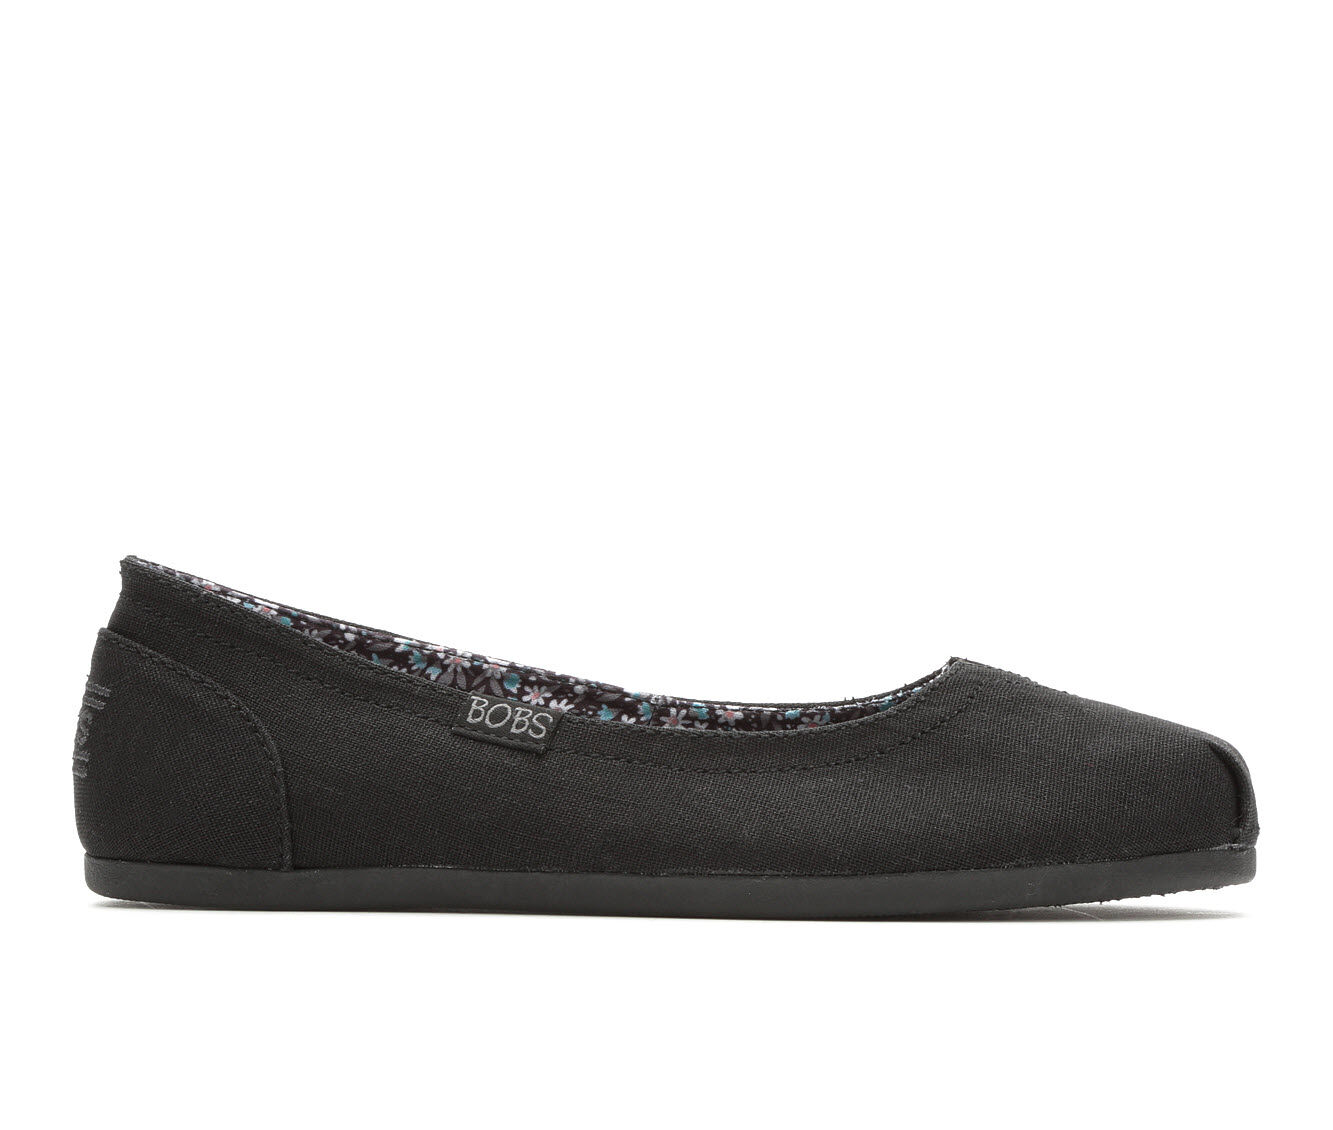 affordable Women's BOBS Turning Point Flats Black